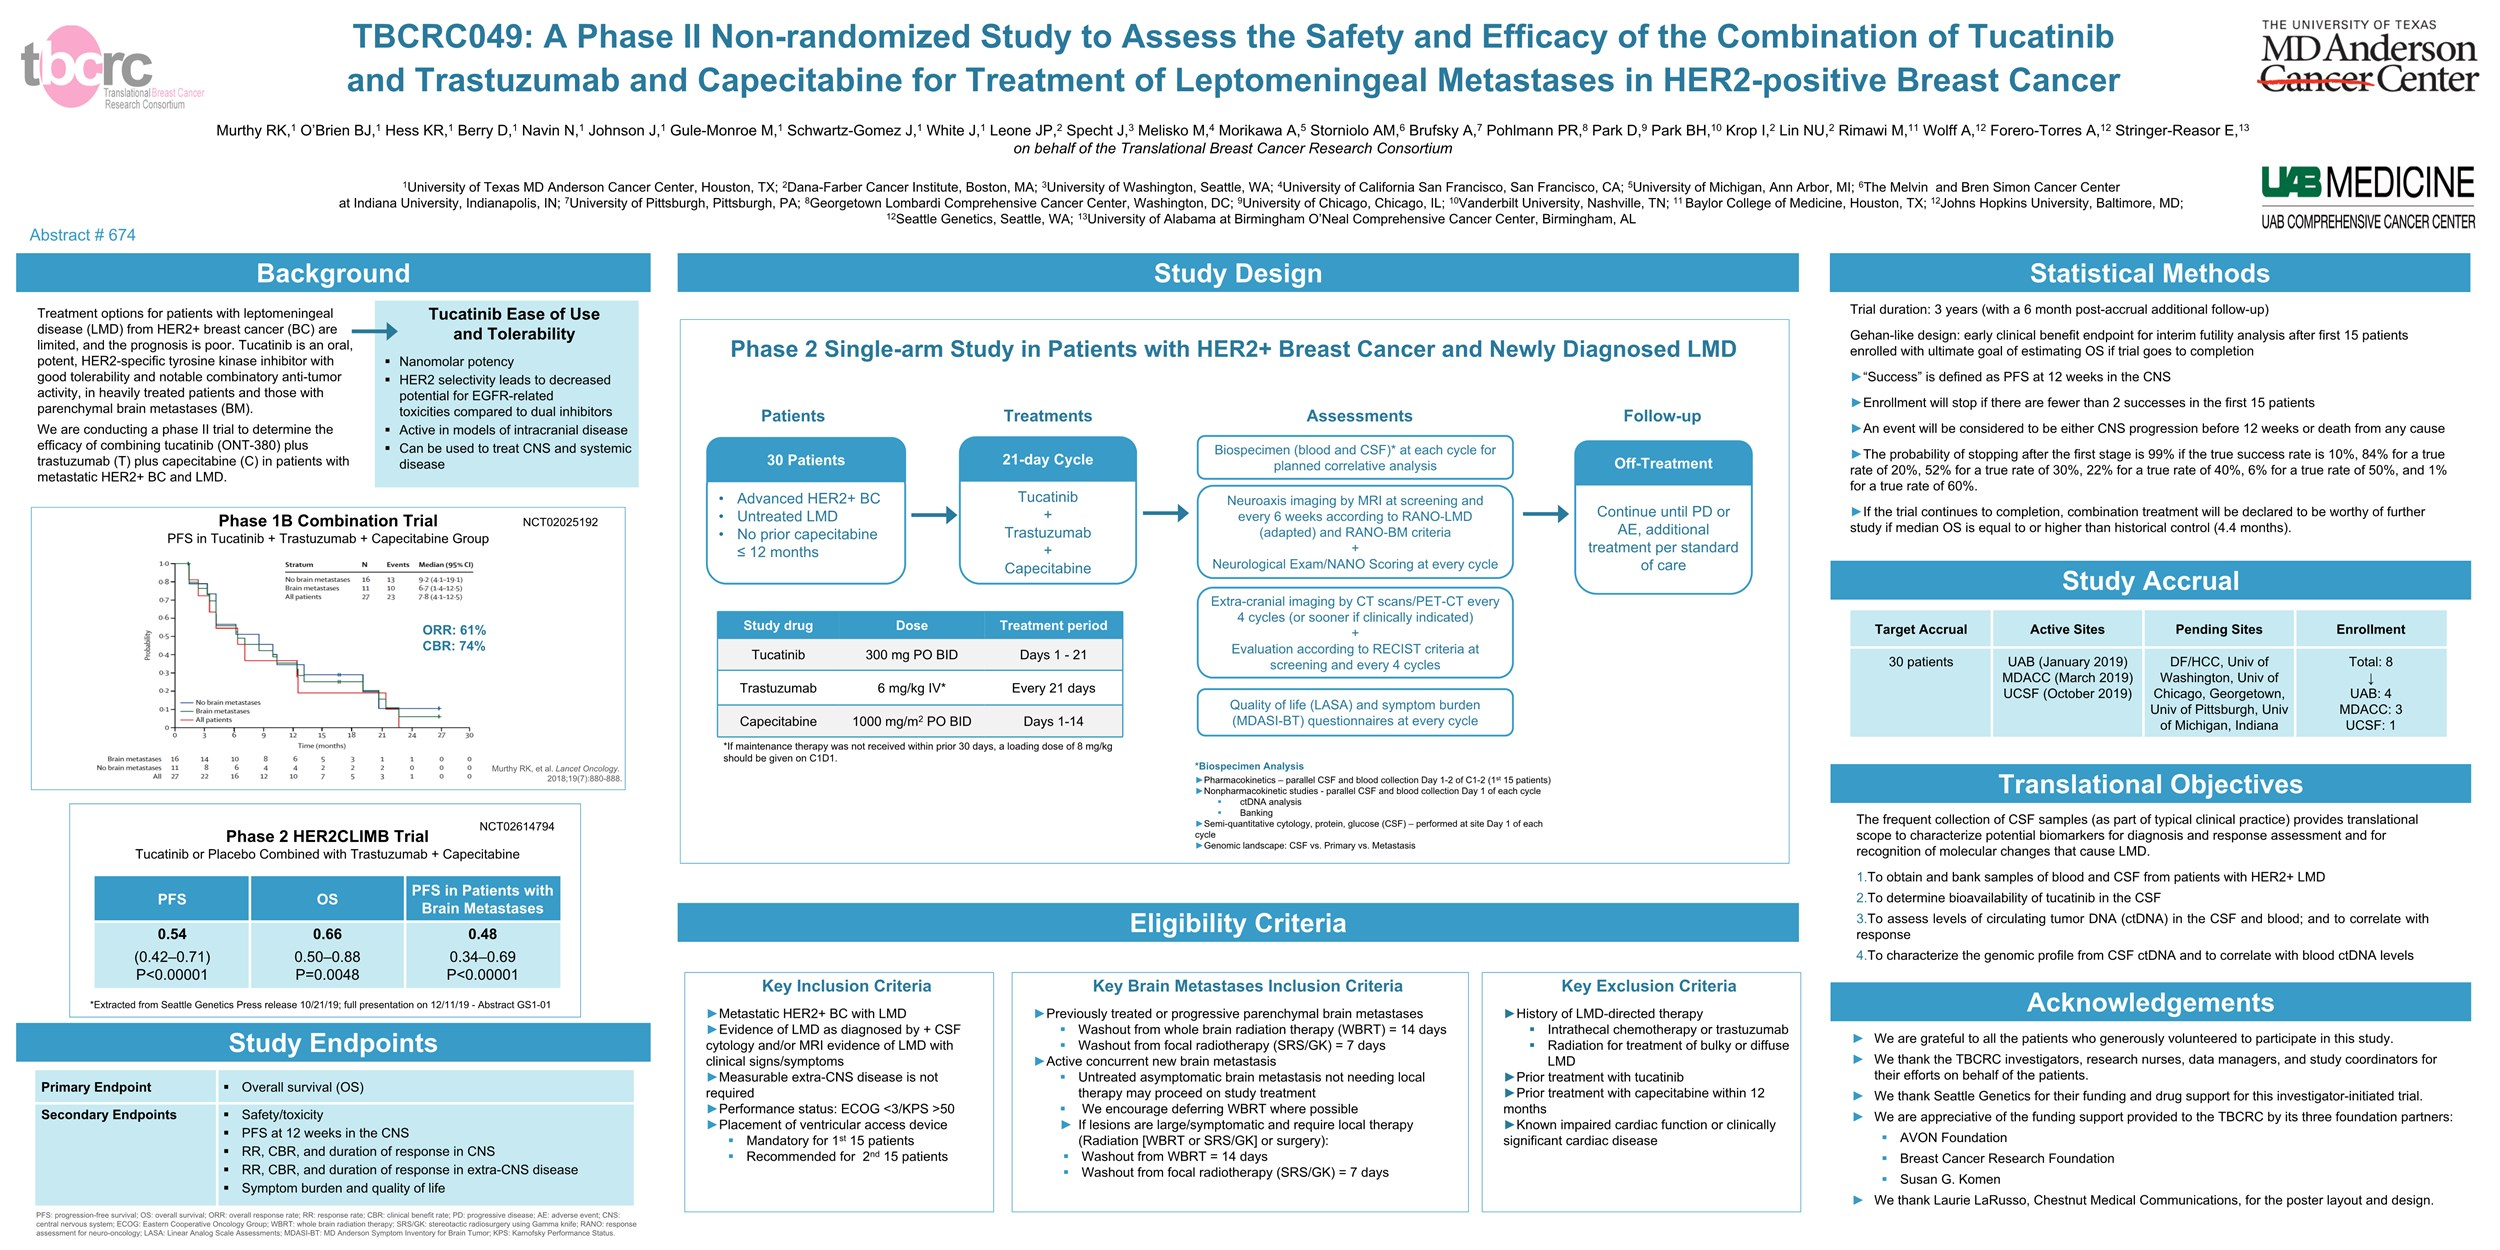 Tbcrc049: a phase ii non-randomized study to assess the safety and efficacy of the combination of tucatinib and trastuzumab and capecitabine for treatment of leptomeningeal metastases in her2 positive breast cancer tbcrc049: a phase ii non-randomized study to assess the safety and efficacy of the combination of tucatinib and trastuzumab and capecitabine for treatment of leptomeningeal metastases in her2 positive breast cancer